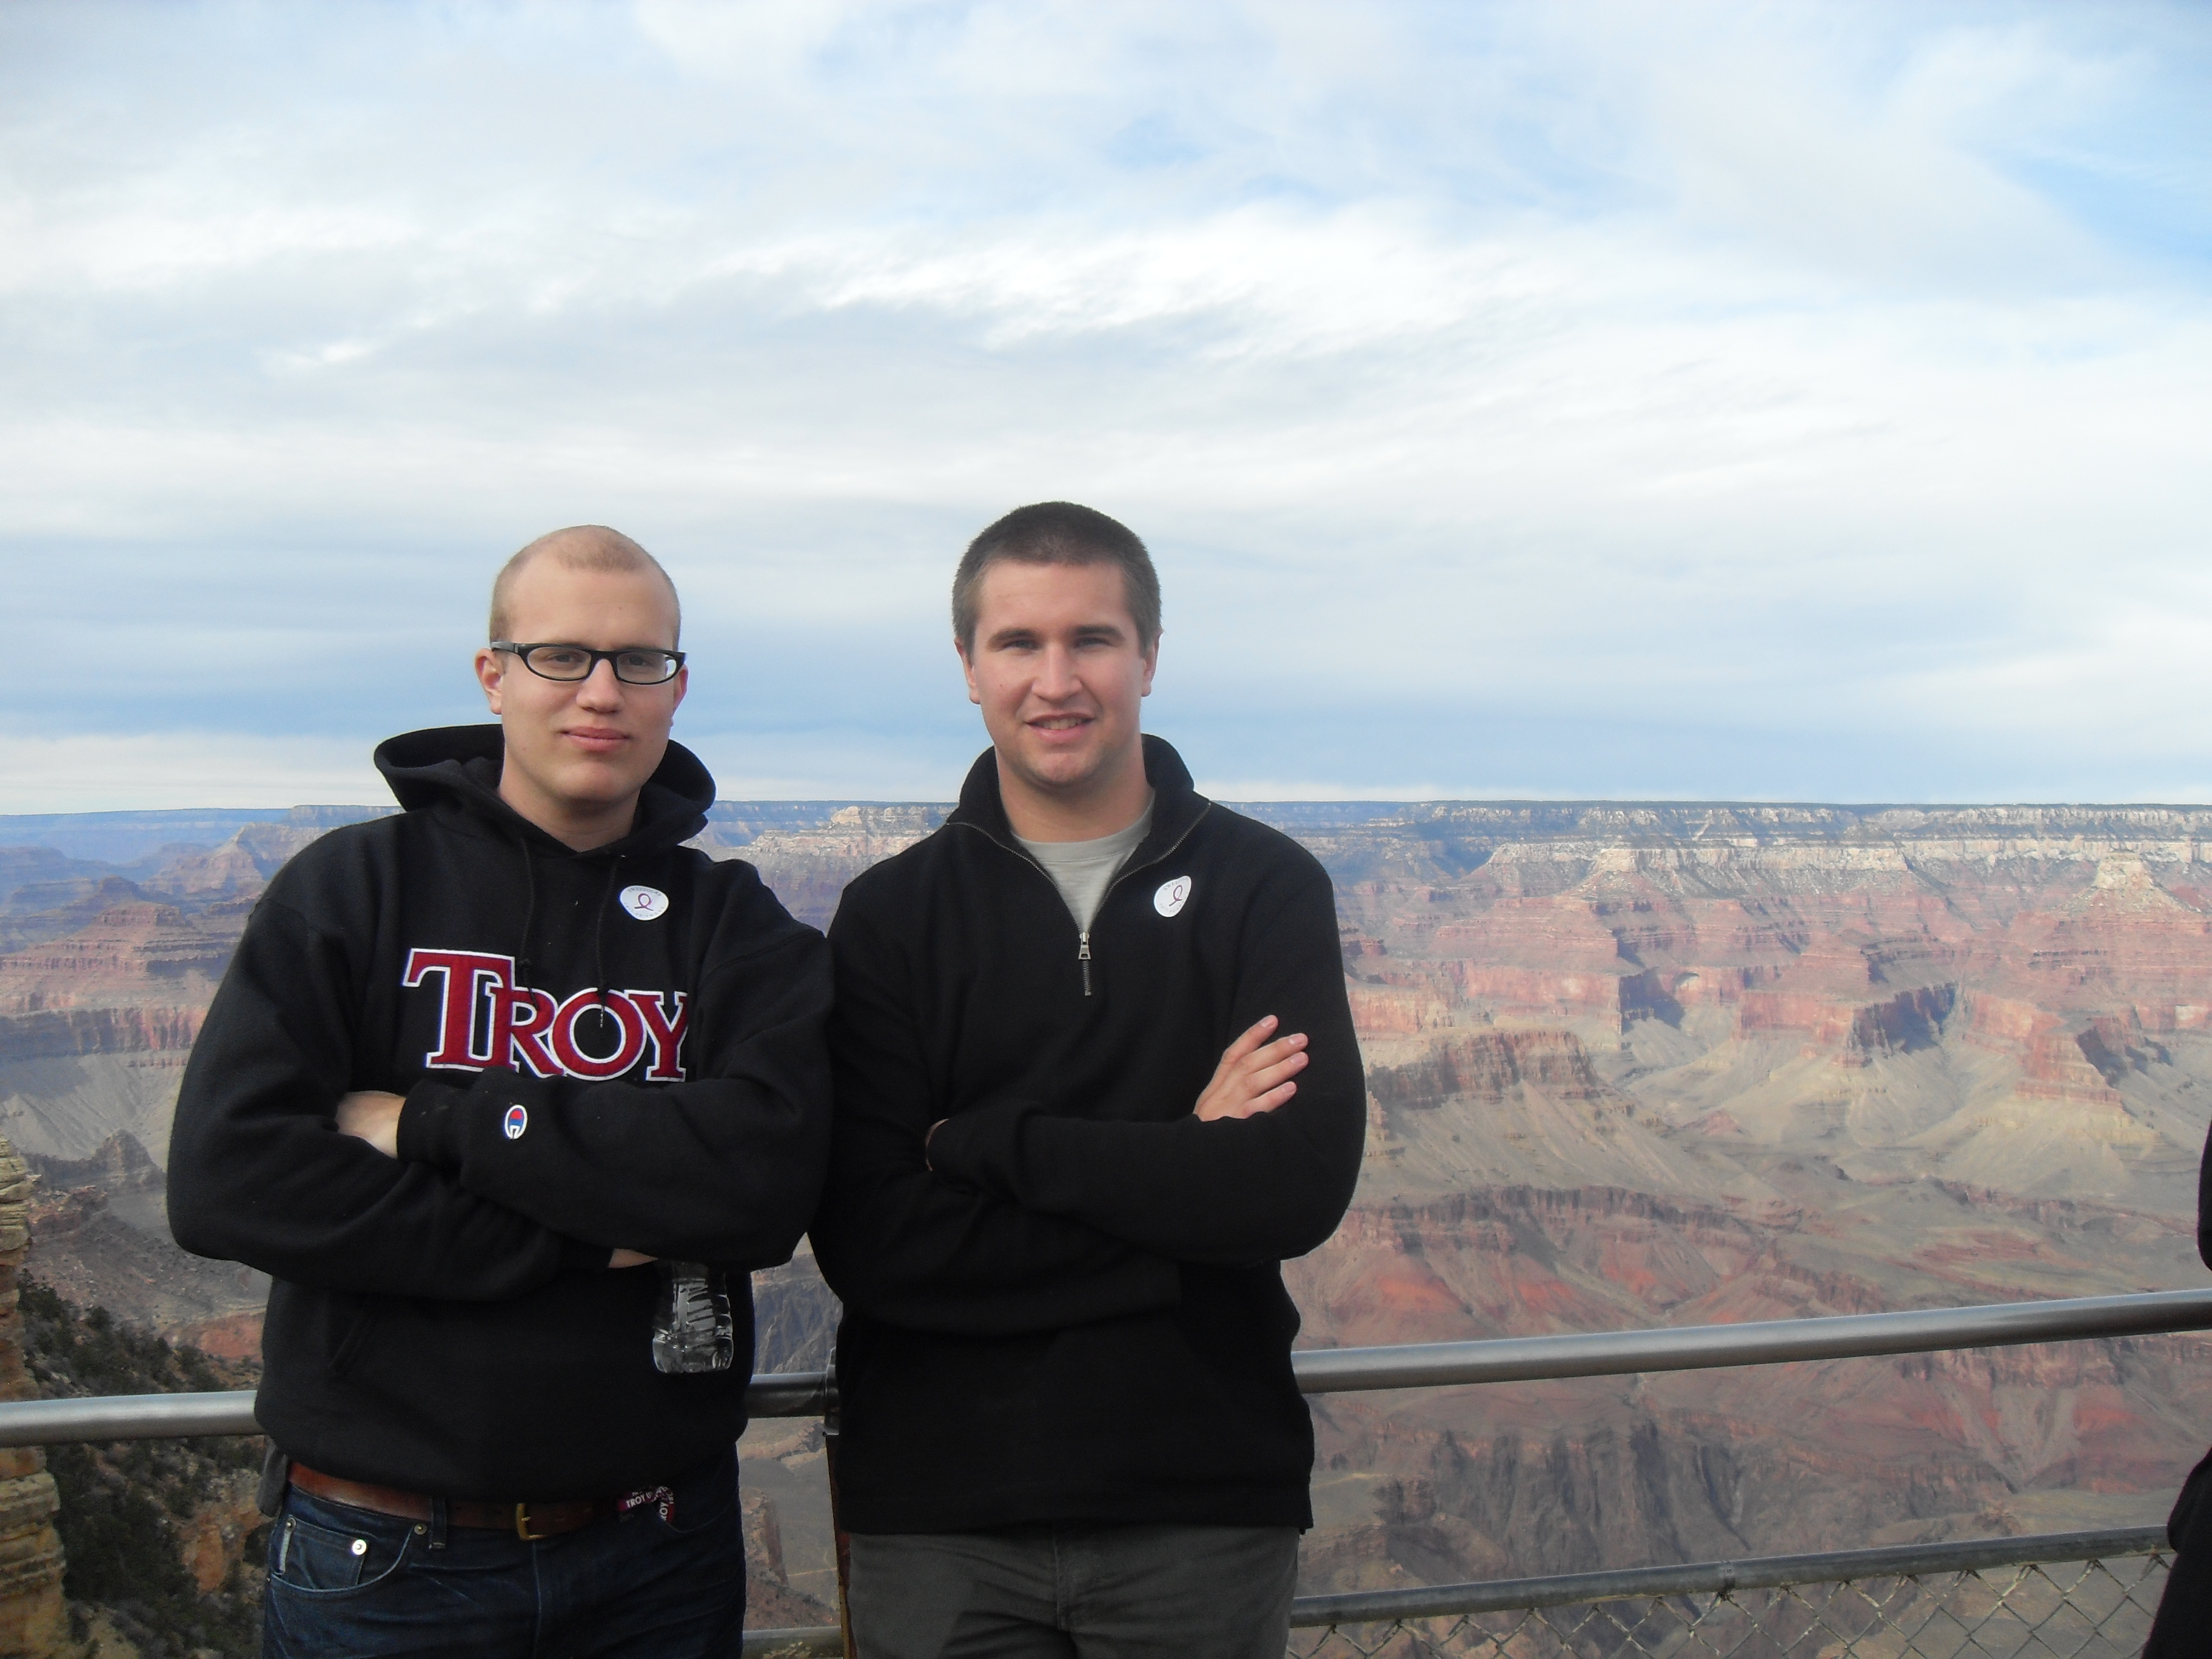 Pete and Korneill at the Grand Canyon